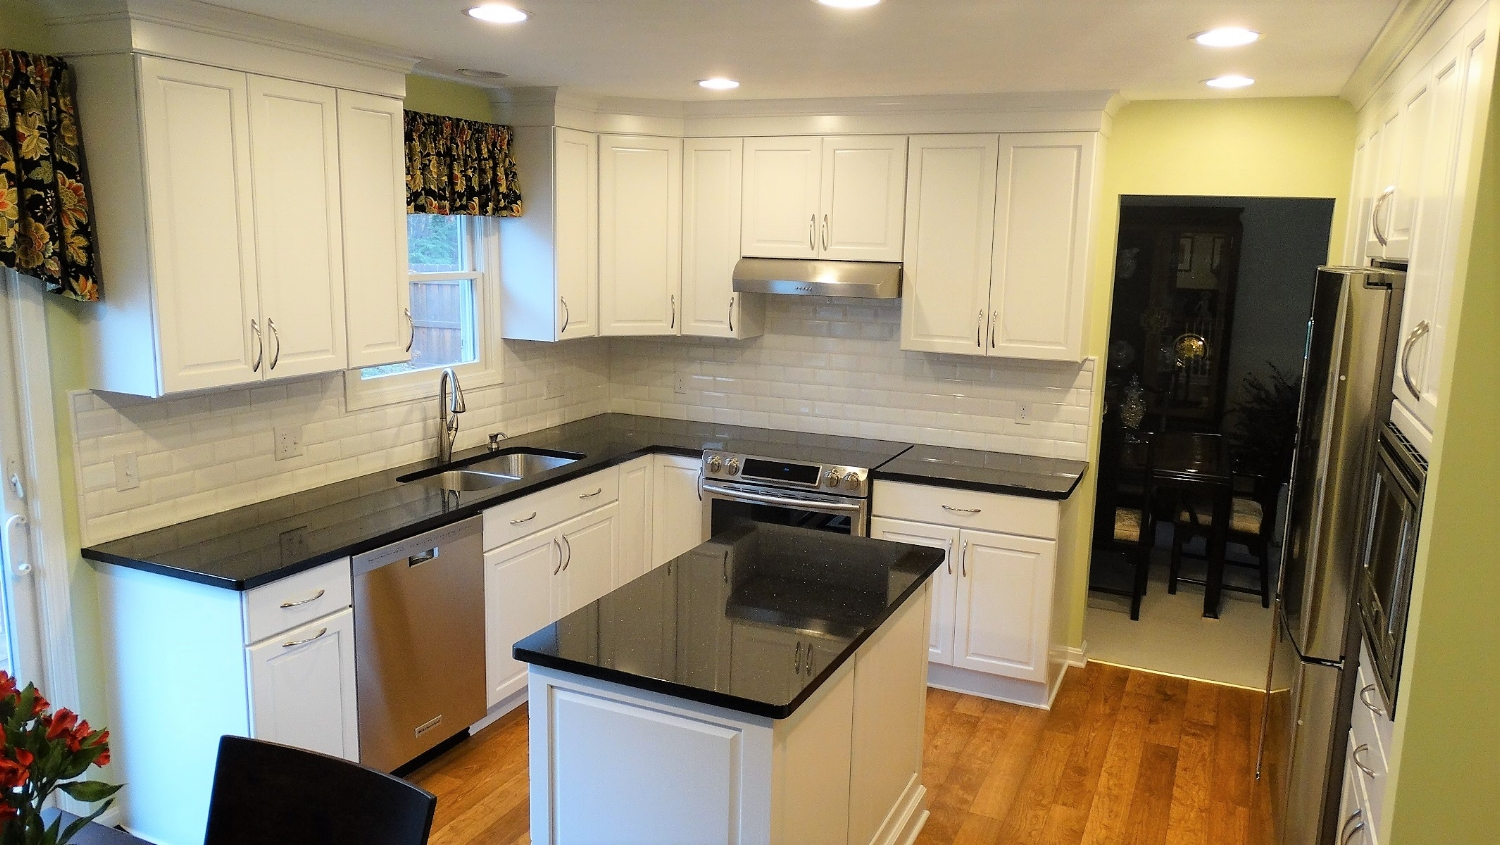 2nd Place Residential Kitchen $45-60K